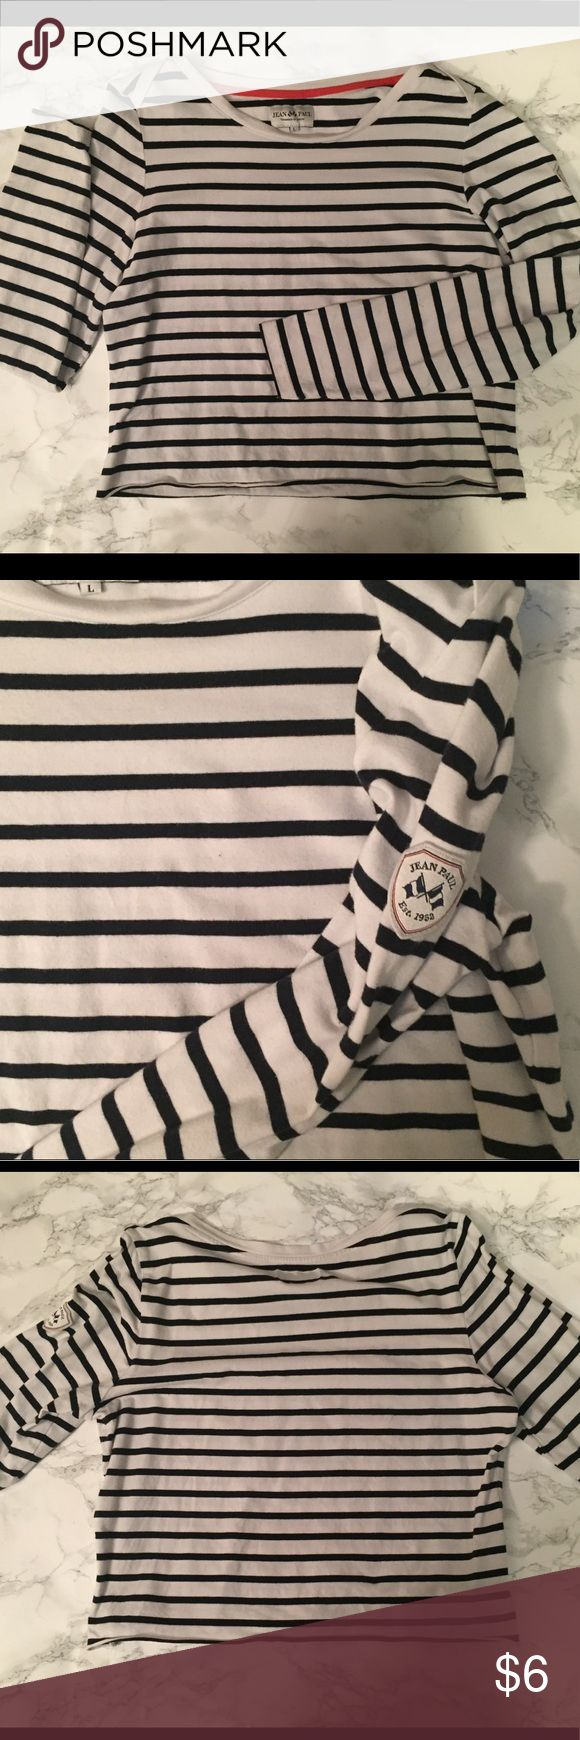 """JENA PAUL HORIZONTAL BLACK AND WHITE STRIPED TEE This shirt is the tiniest bit cropped. Black and white thin horizontal stripes. A little patch on the left arm with """"Jean Paul."""" Size women's large. Unsure of the fabric probably a poly/cotton. Jean Paul Gaultier Tops Tees - Long Sleeve"""